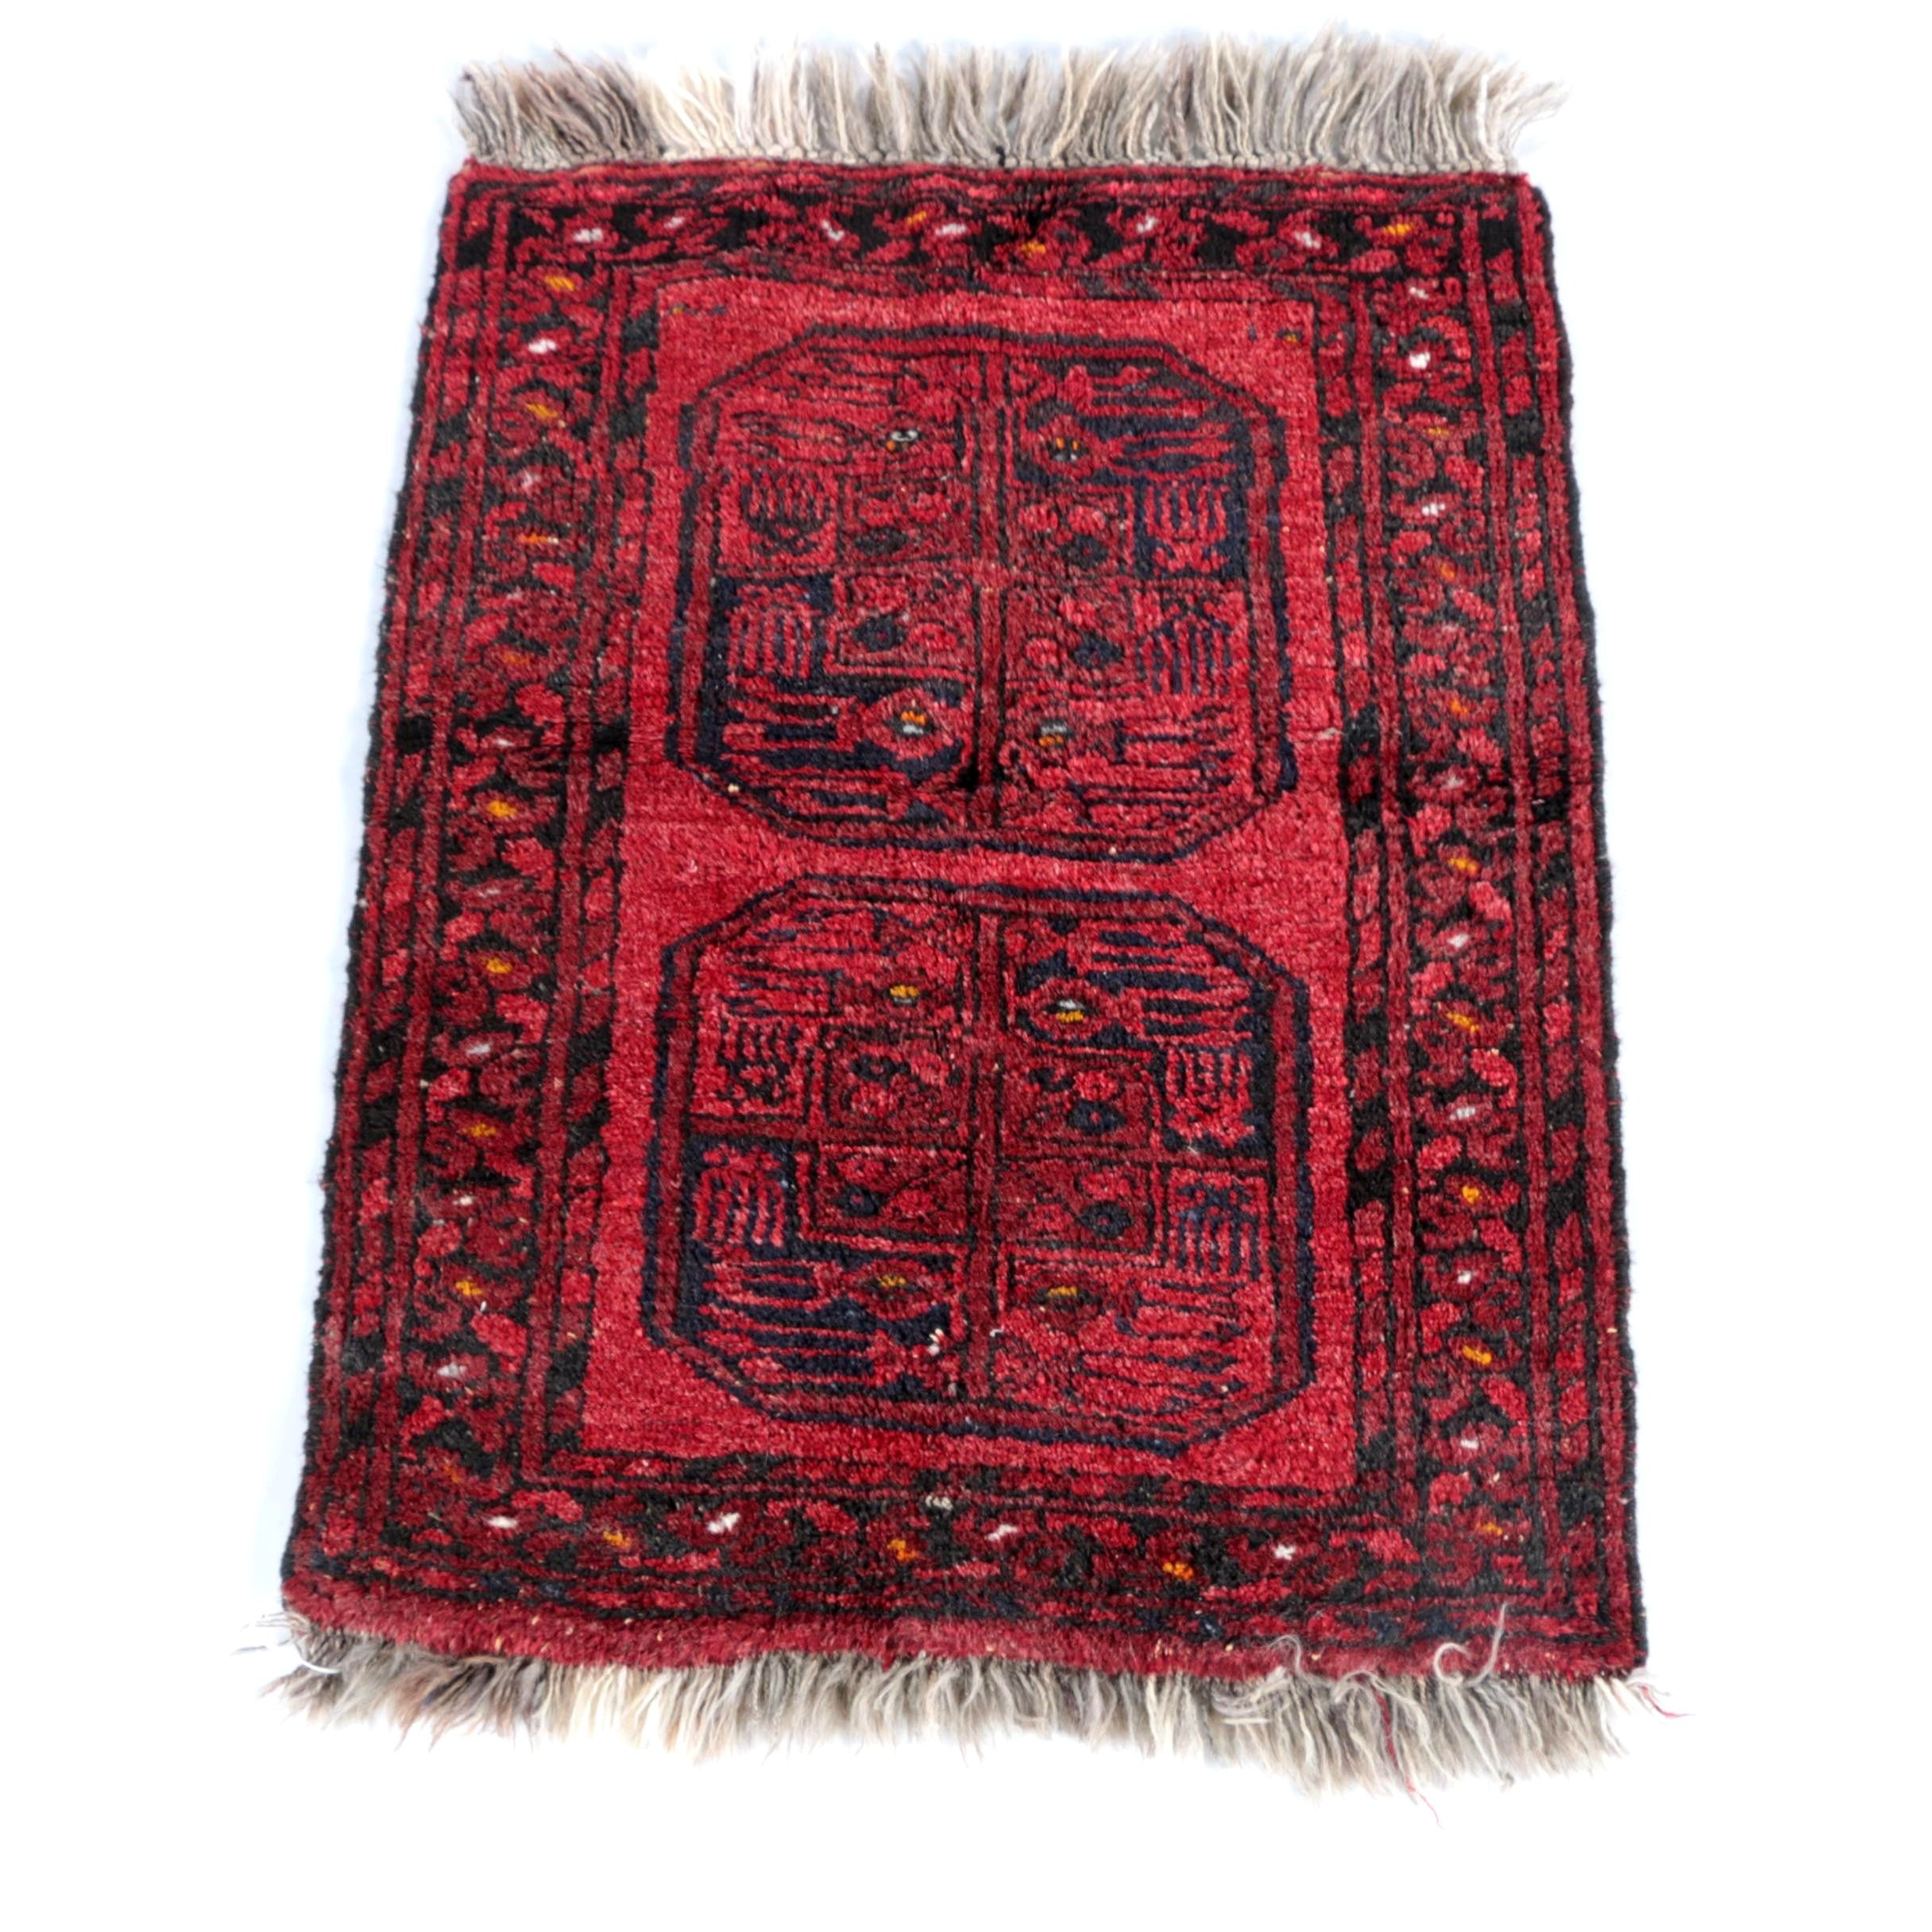 Semi-Antique Hand-Knotted Turkmen Ersari Wool Accent Rug